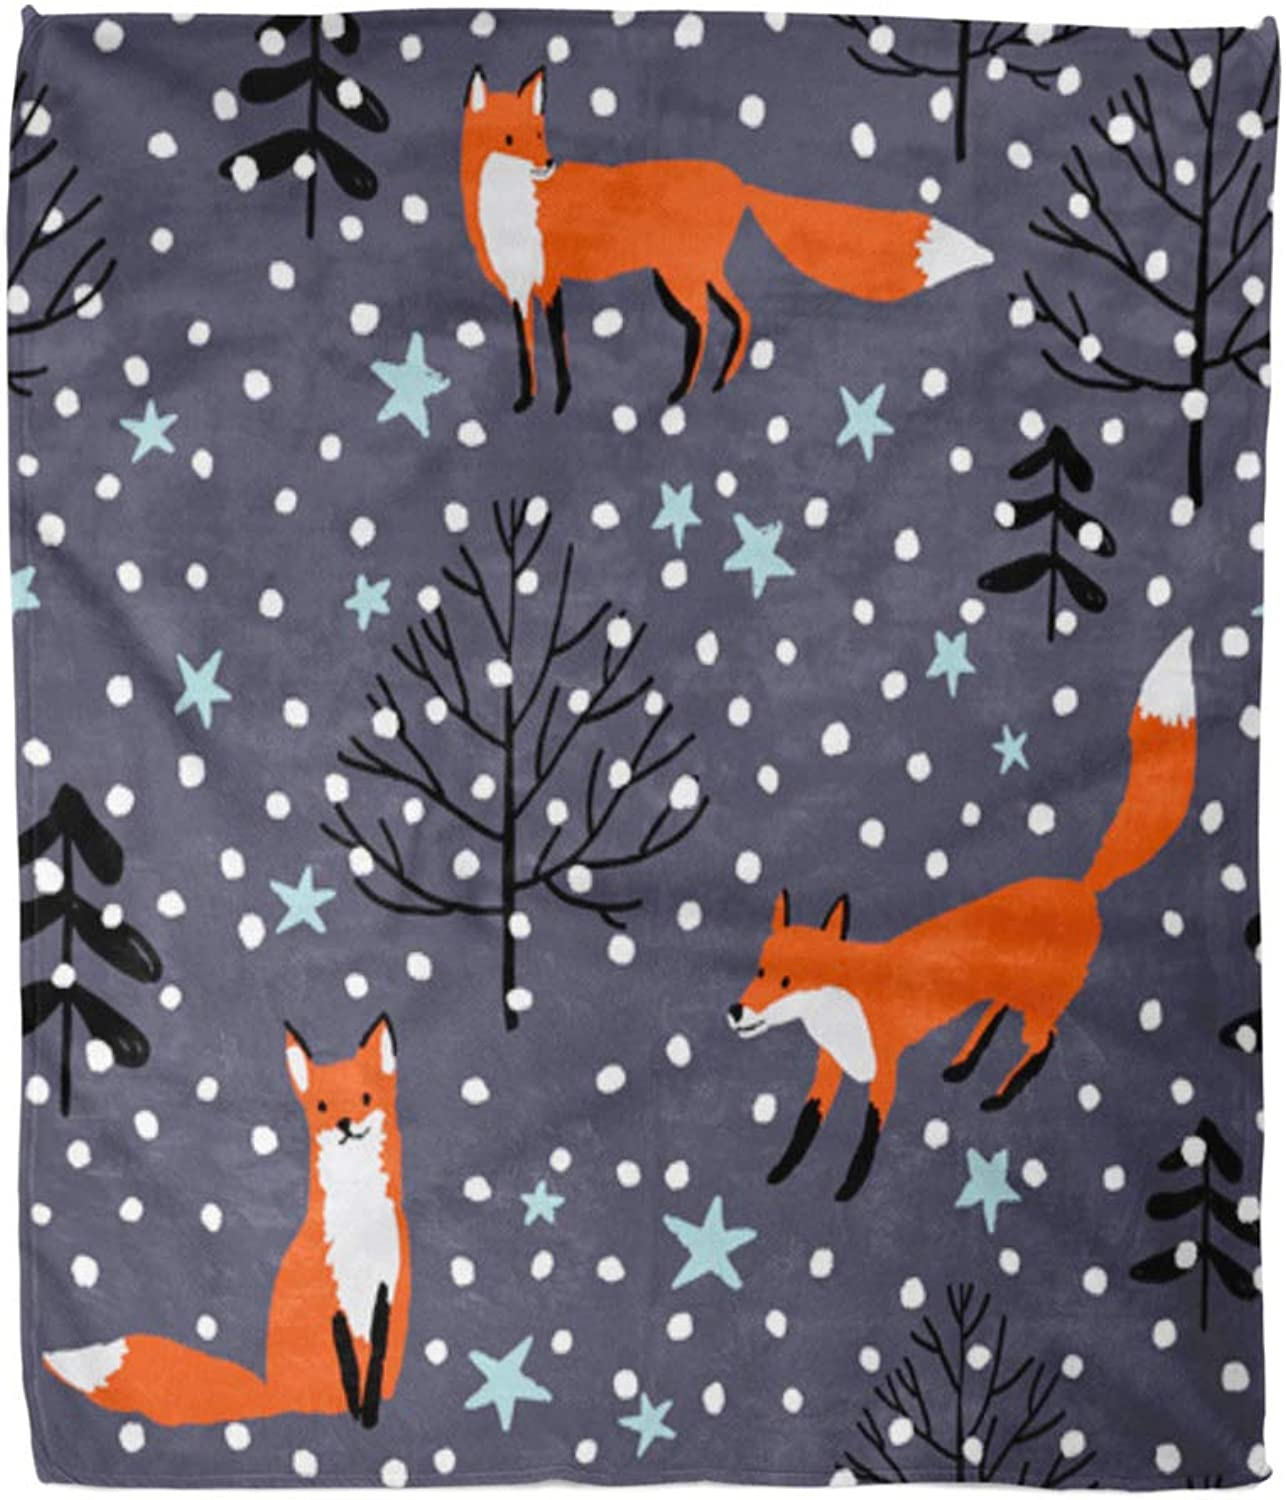 Emvency Throw Blanket Warm Cozy Print Flannel Red Foxes in The Woodland Stars Snow Wild Forest Animal Winter Xmas Comfortable Soft for Bed Sofa and Couch 50x60 Inches